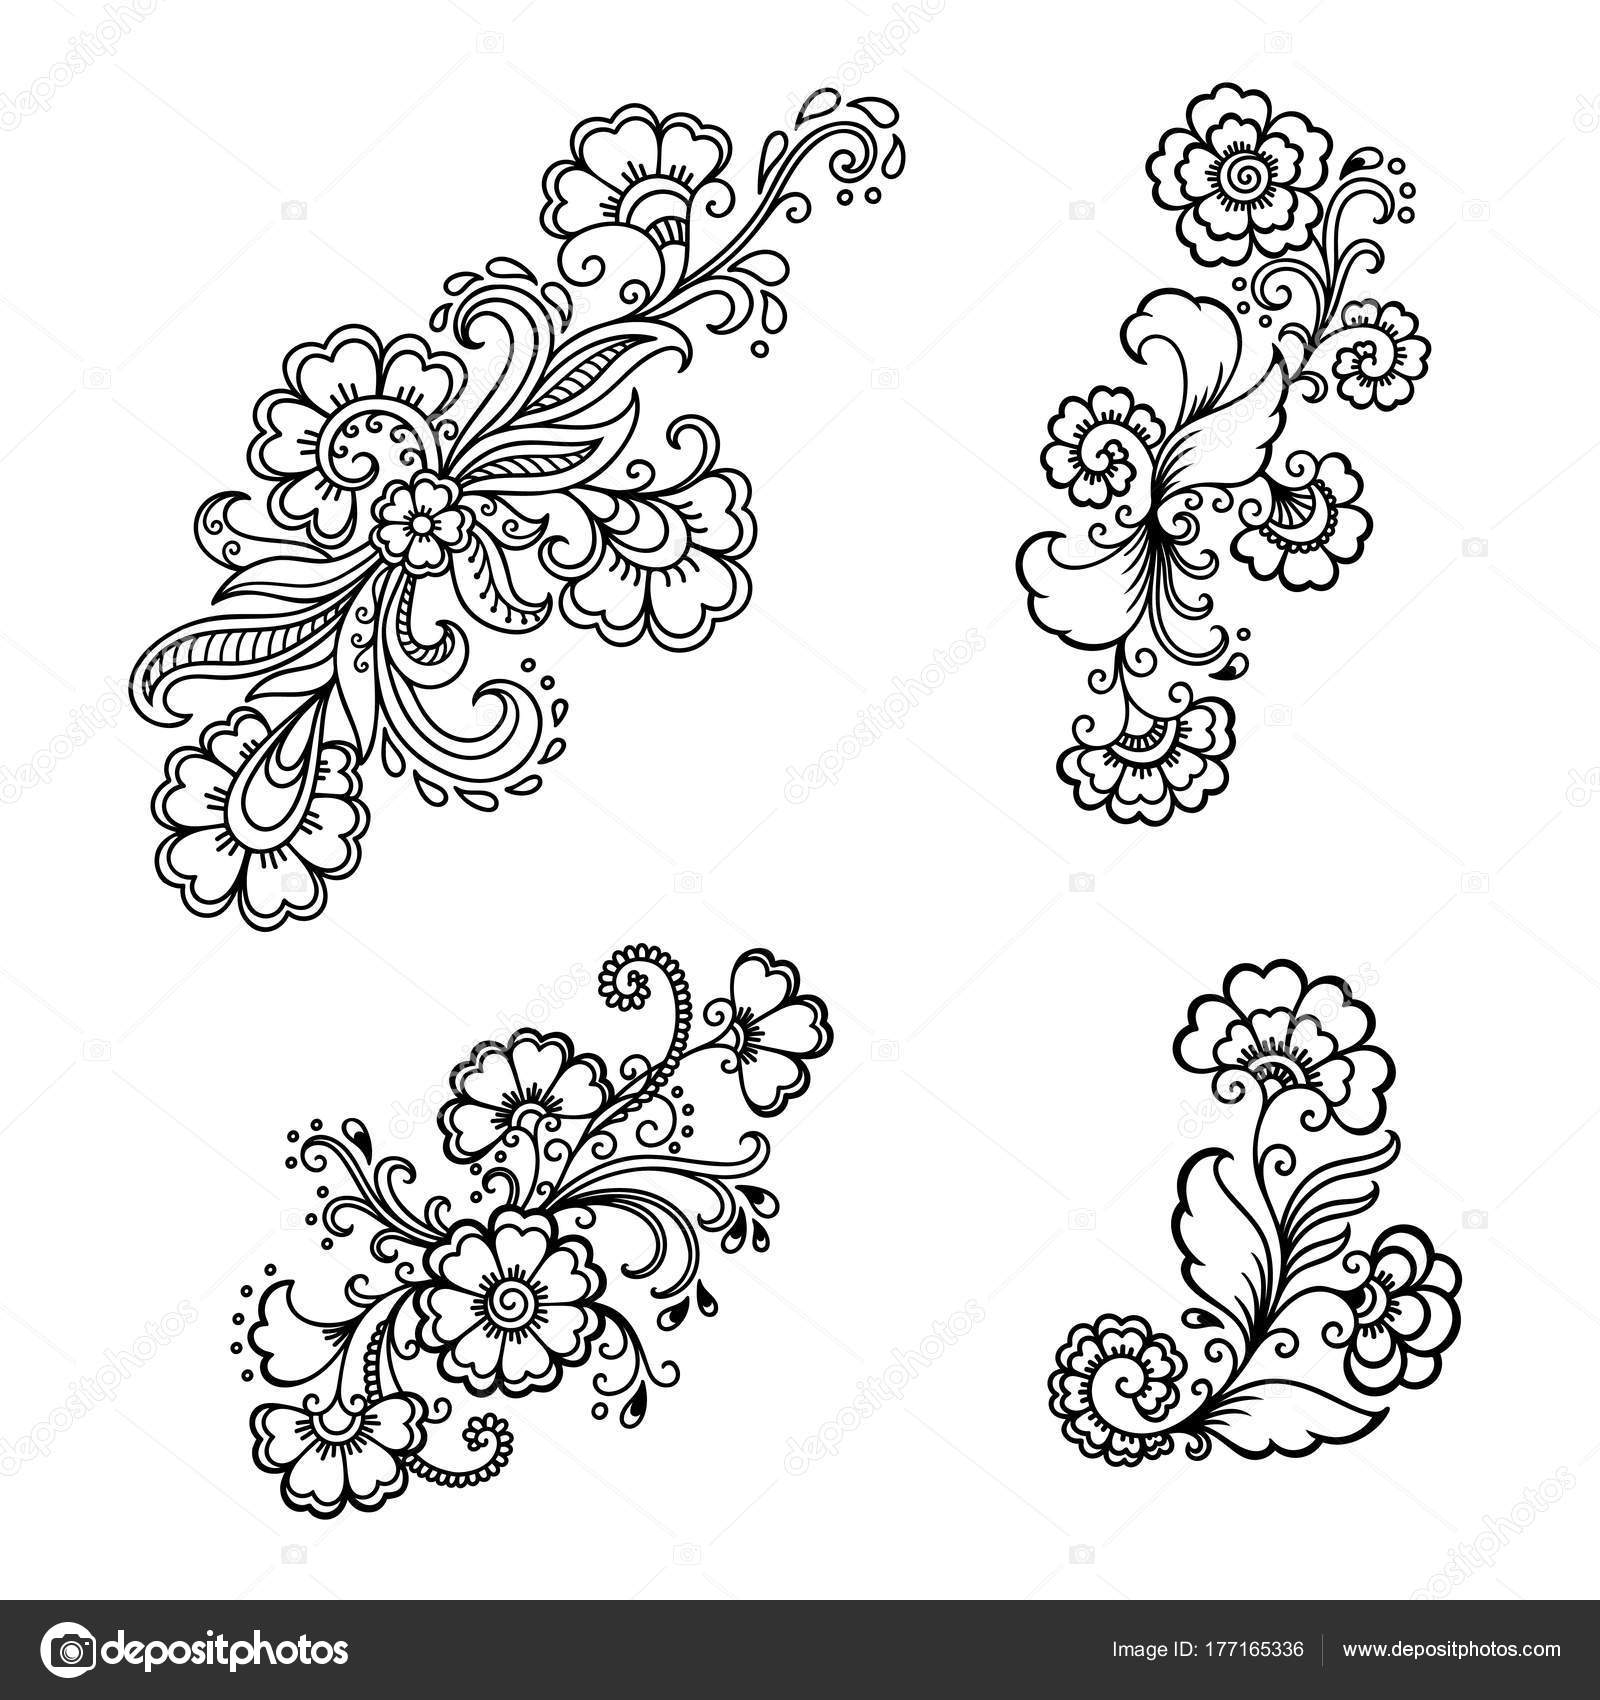 Henna tattoo flower template indian style ethnic floral paisley henna tattoo flower template indian style ethnic floral paisley lotus stock vector mightylinksfo